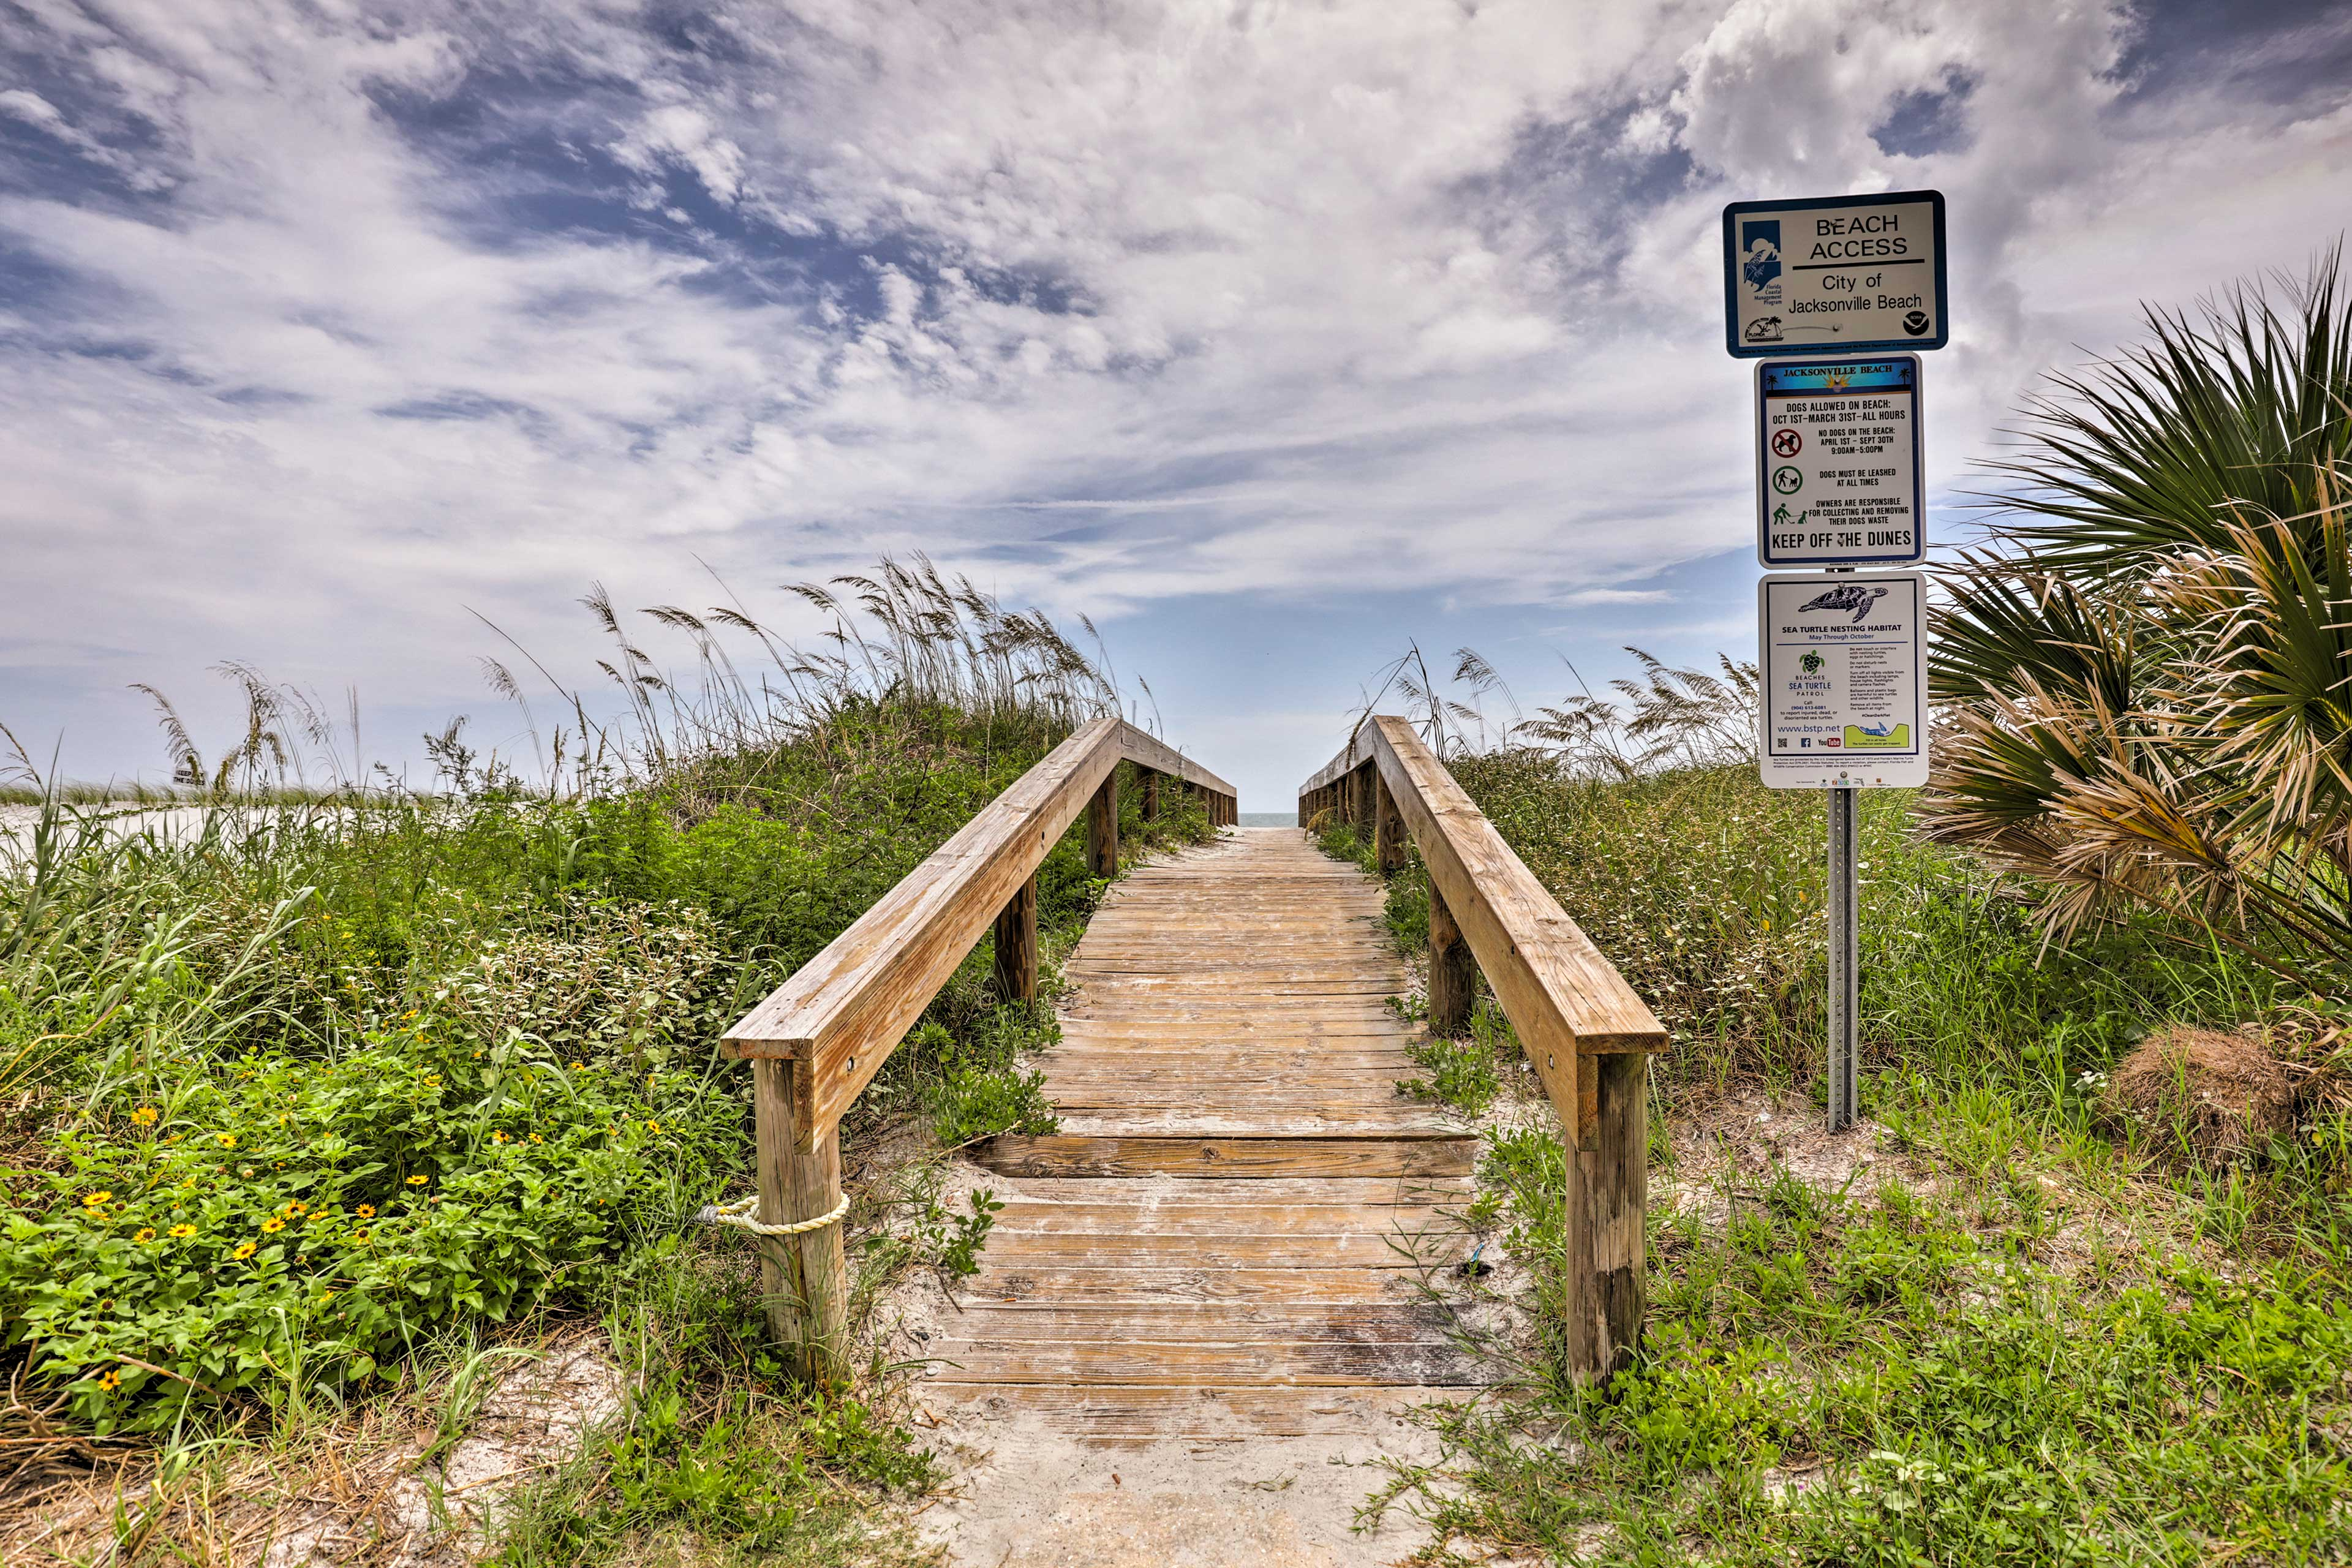 This rustic wooden bridge traverses the dunes and leads directly to the ocean.